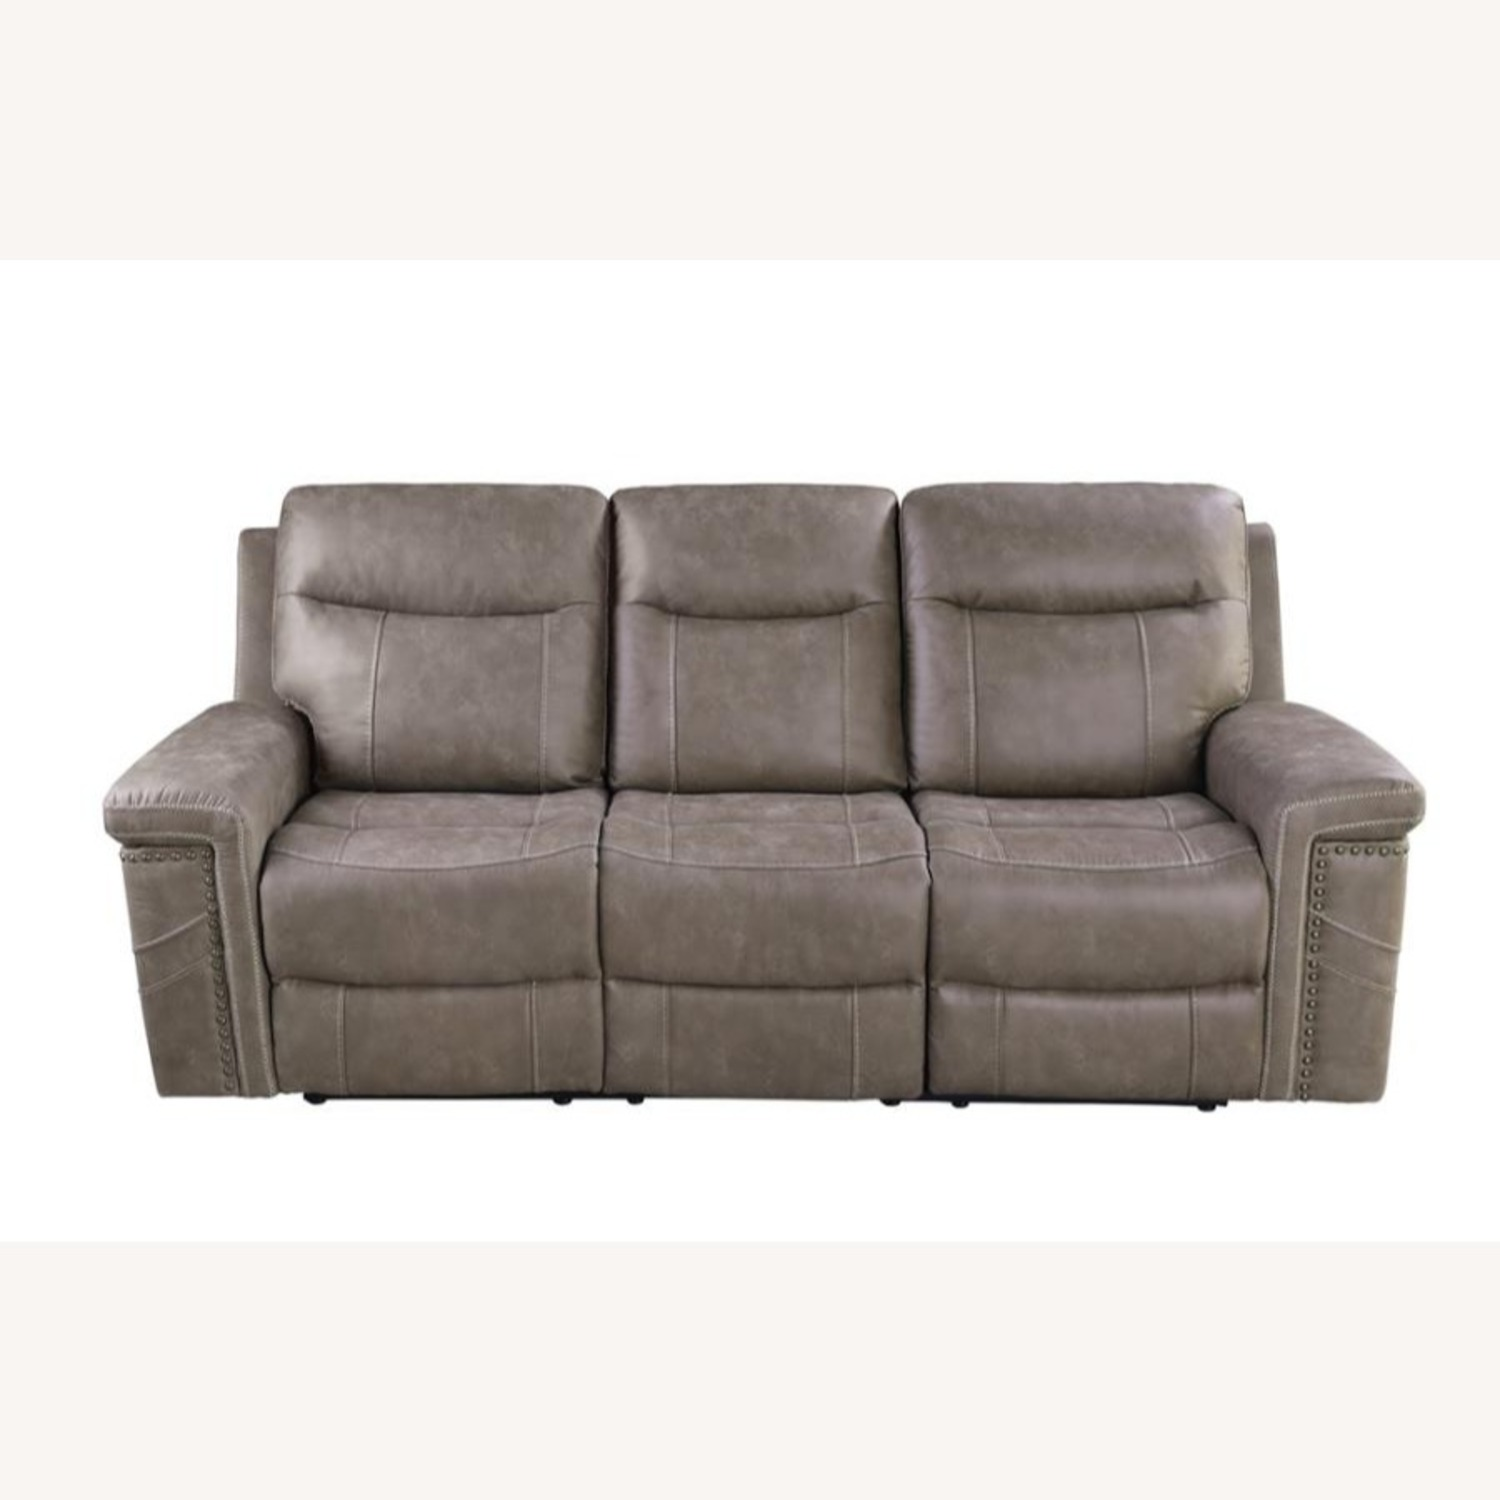 Power Sofa Recliner In Taupe Upholstery - image-2